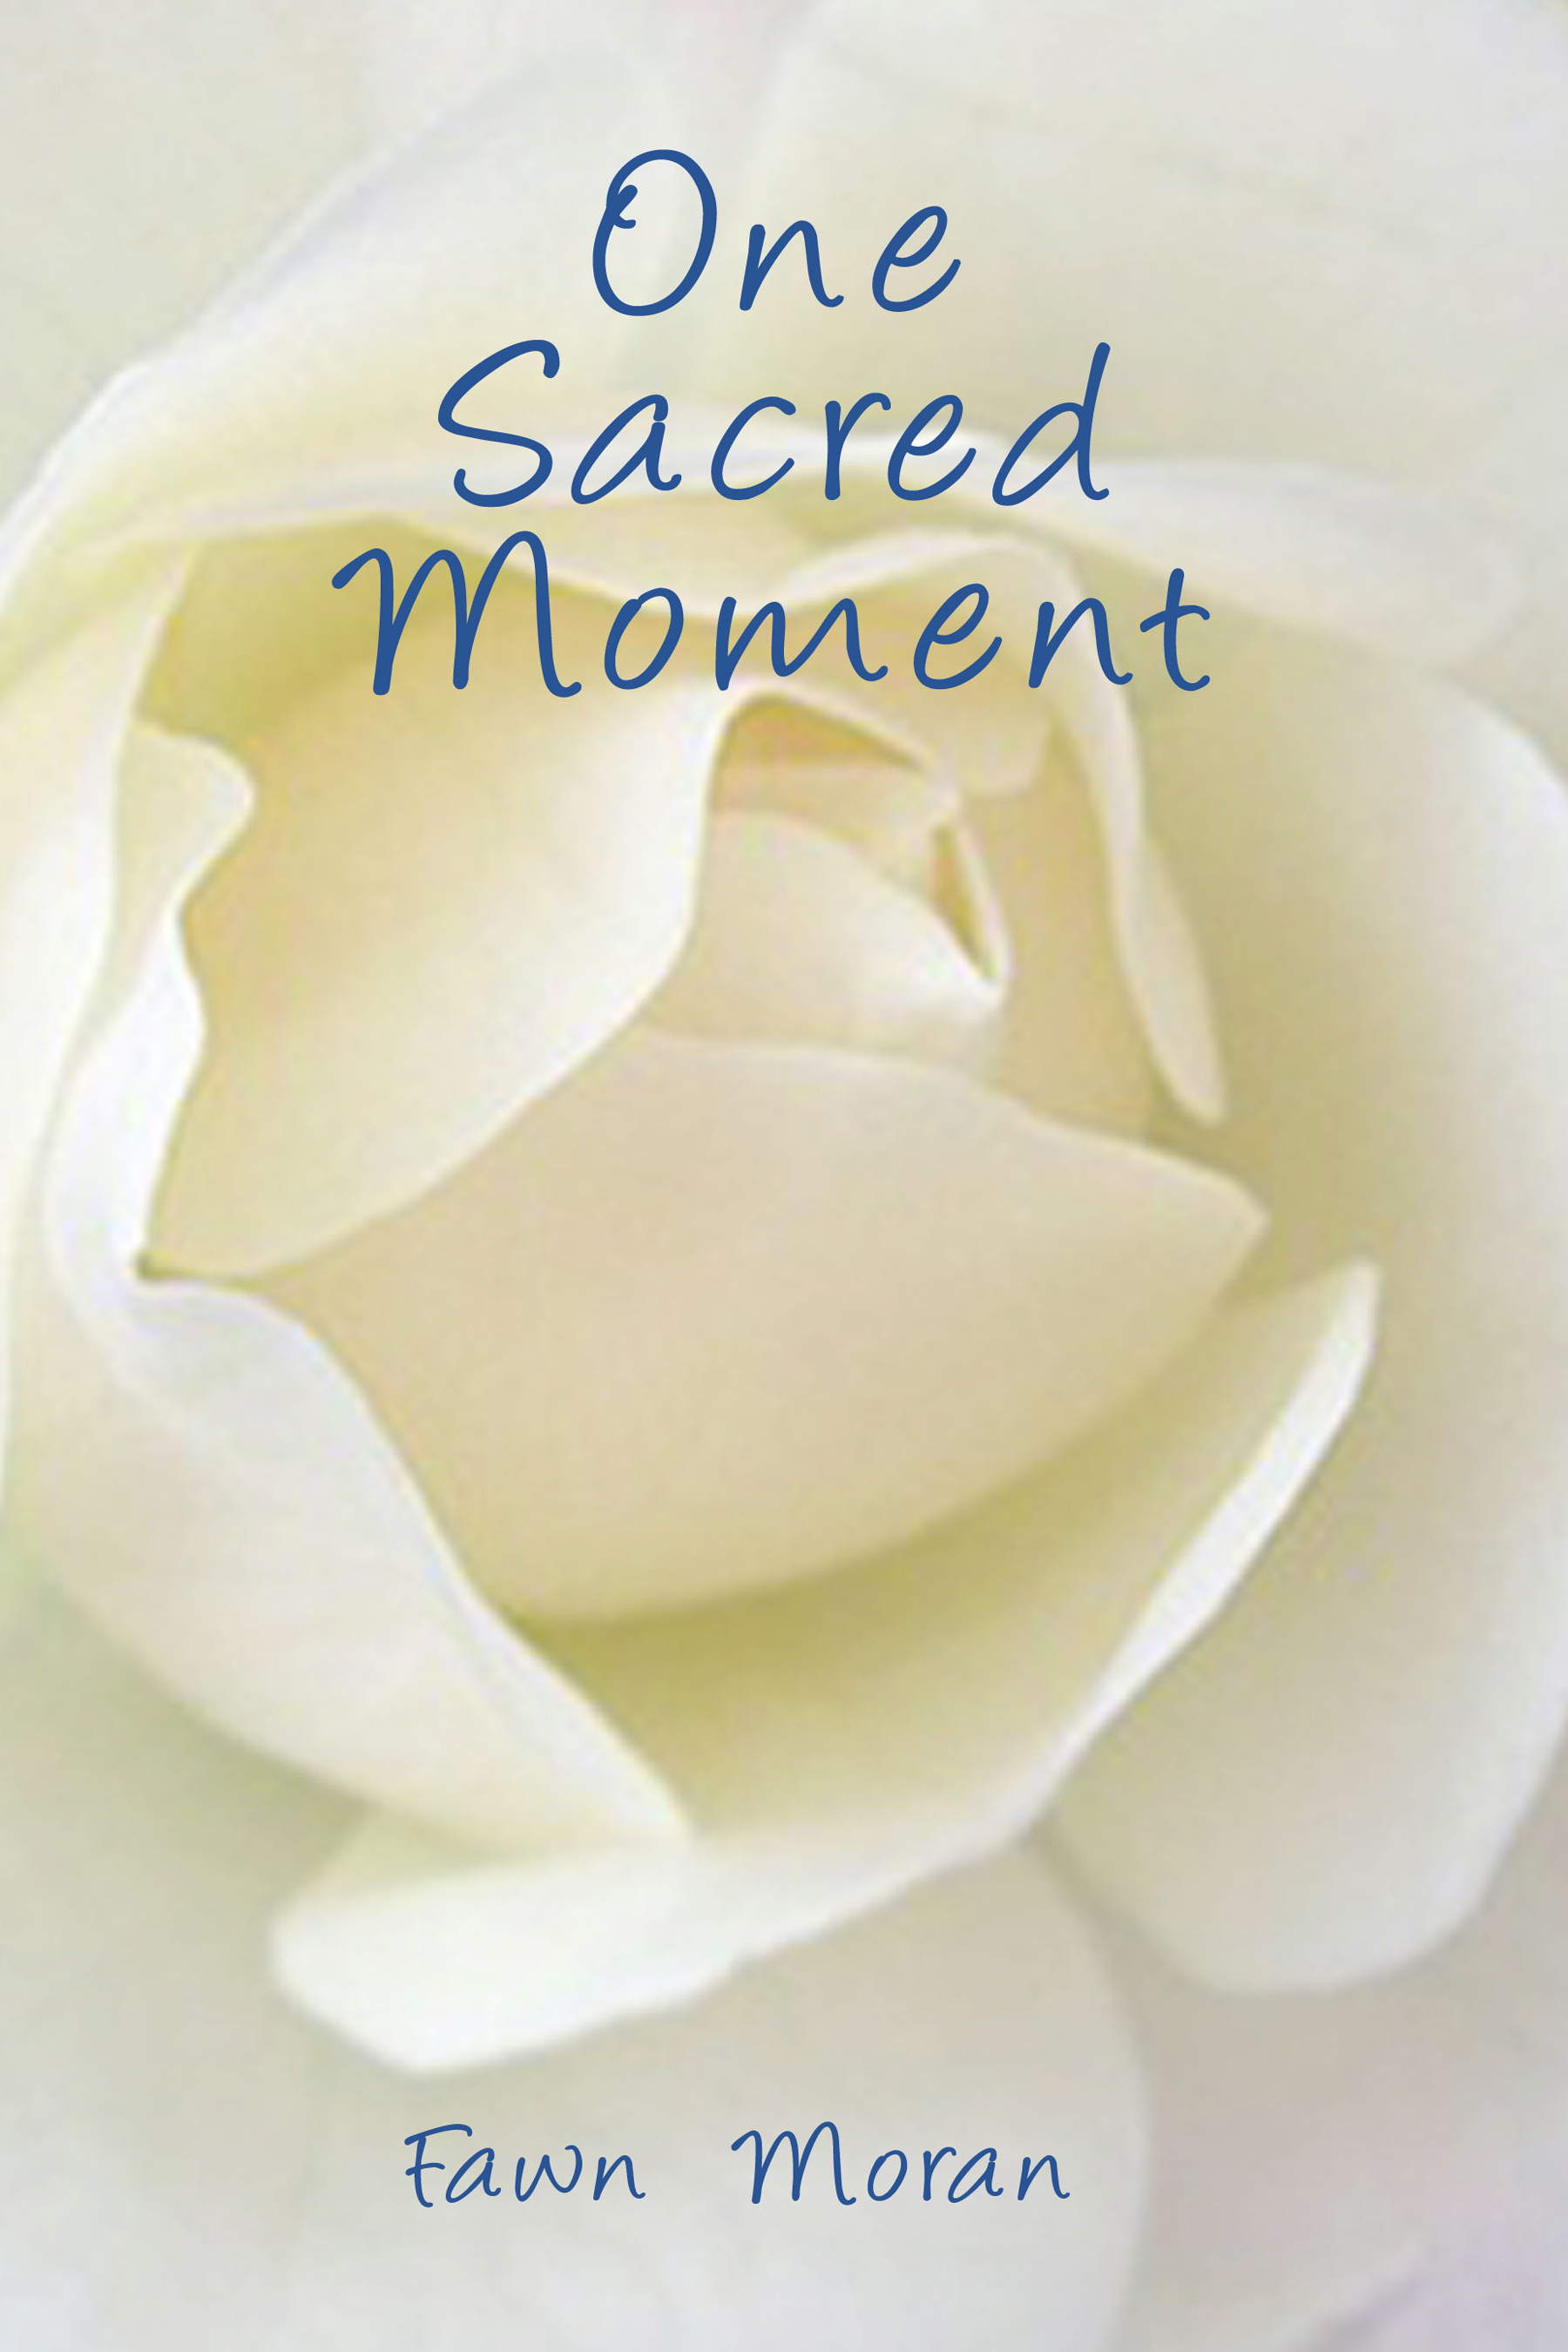 One Sacred Moment (The Mystical Traveler #5)  by  Fawn Moran